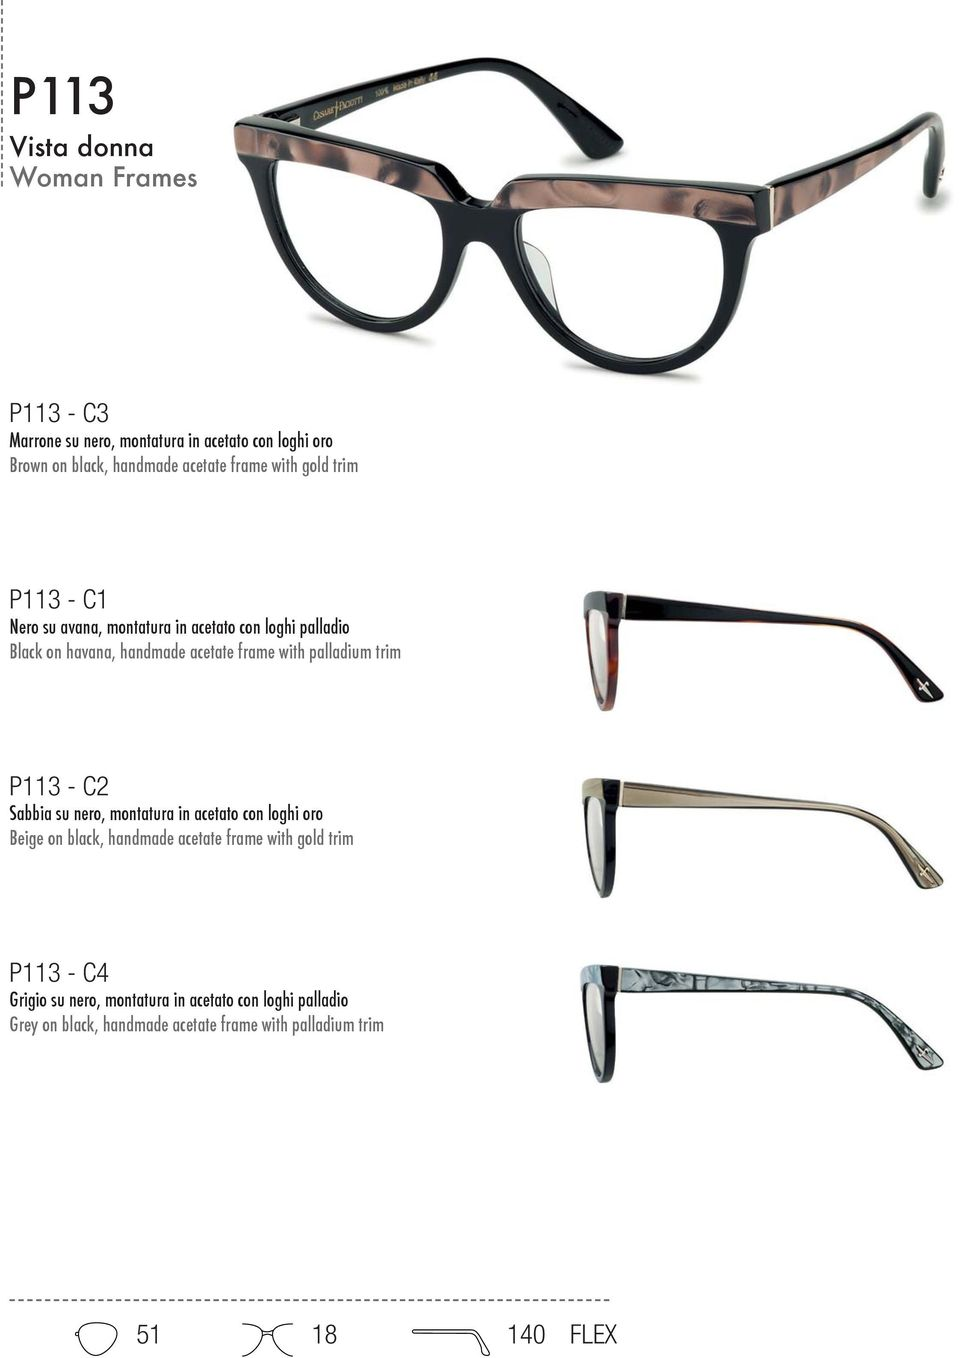 palladium trim P113 - C2 Sabbia su nero, montatura in acetato con loghi oro Beige on black, handmade acetate frame with gold